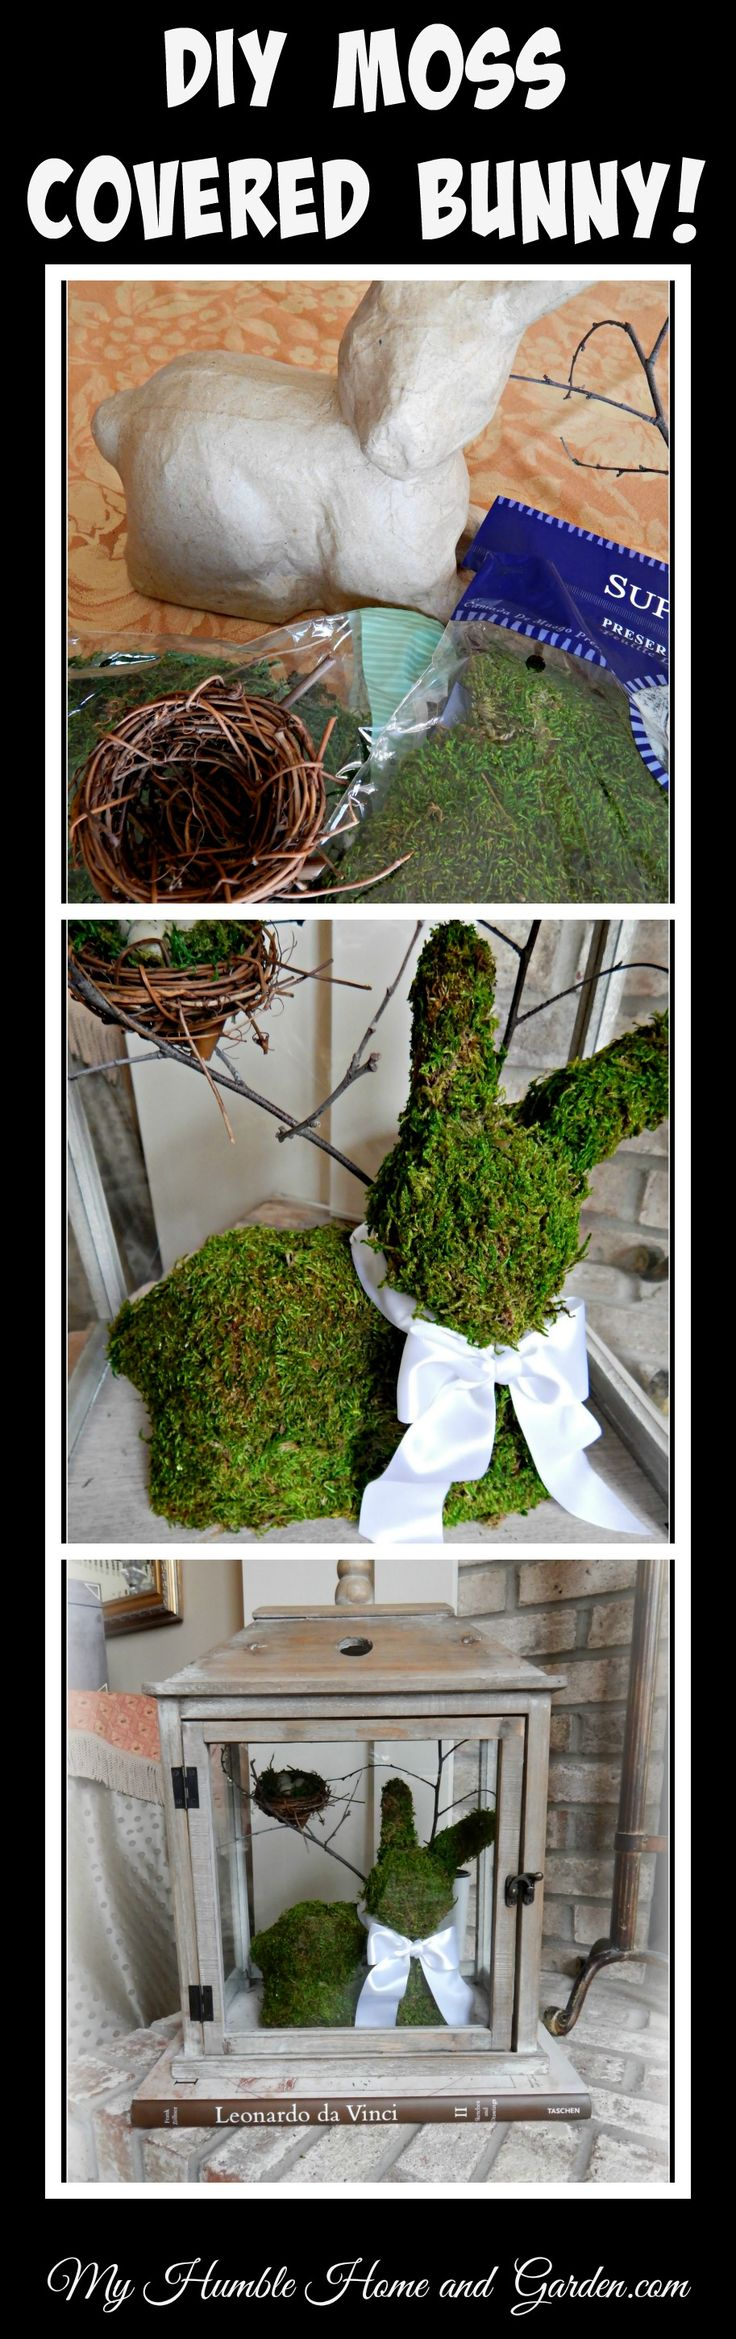 DIY Moss Covered Bunny on My Humble Home and Garden.com